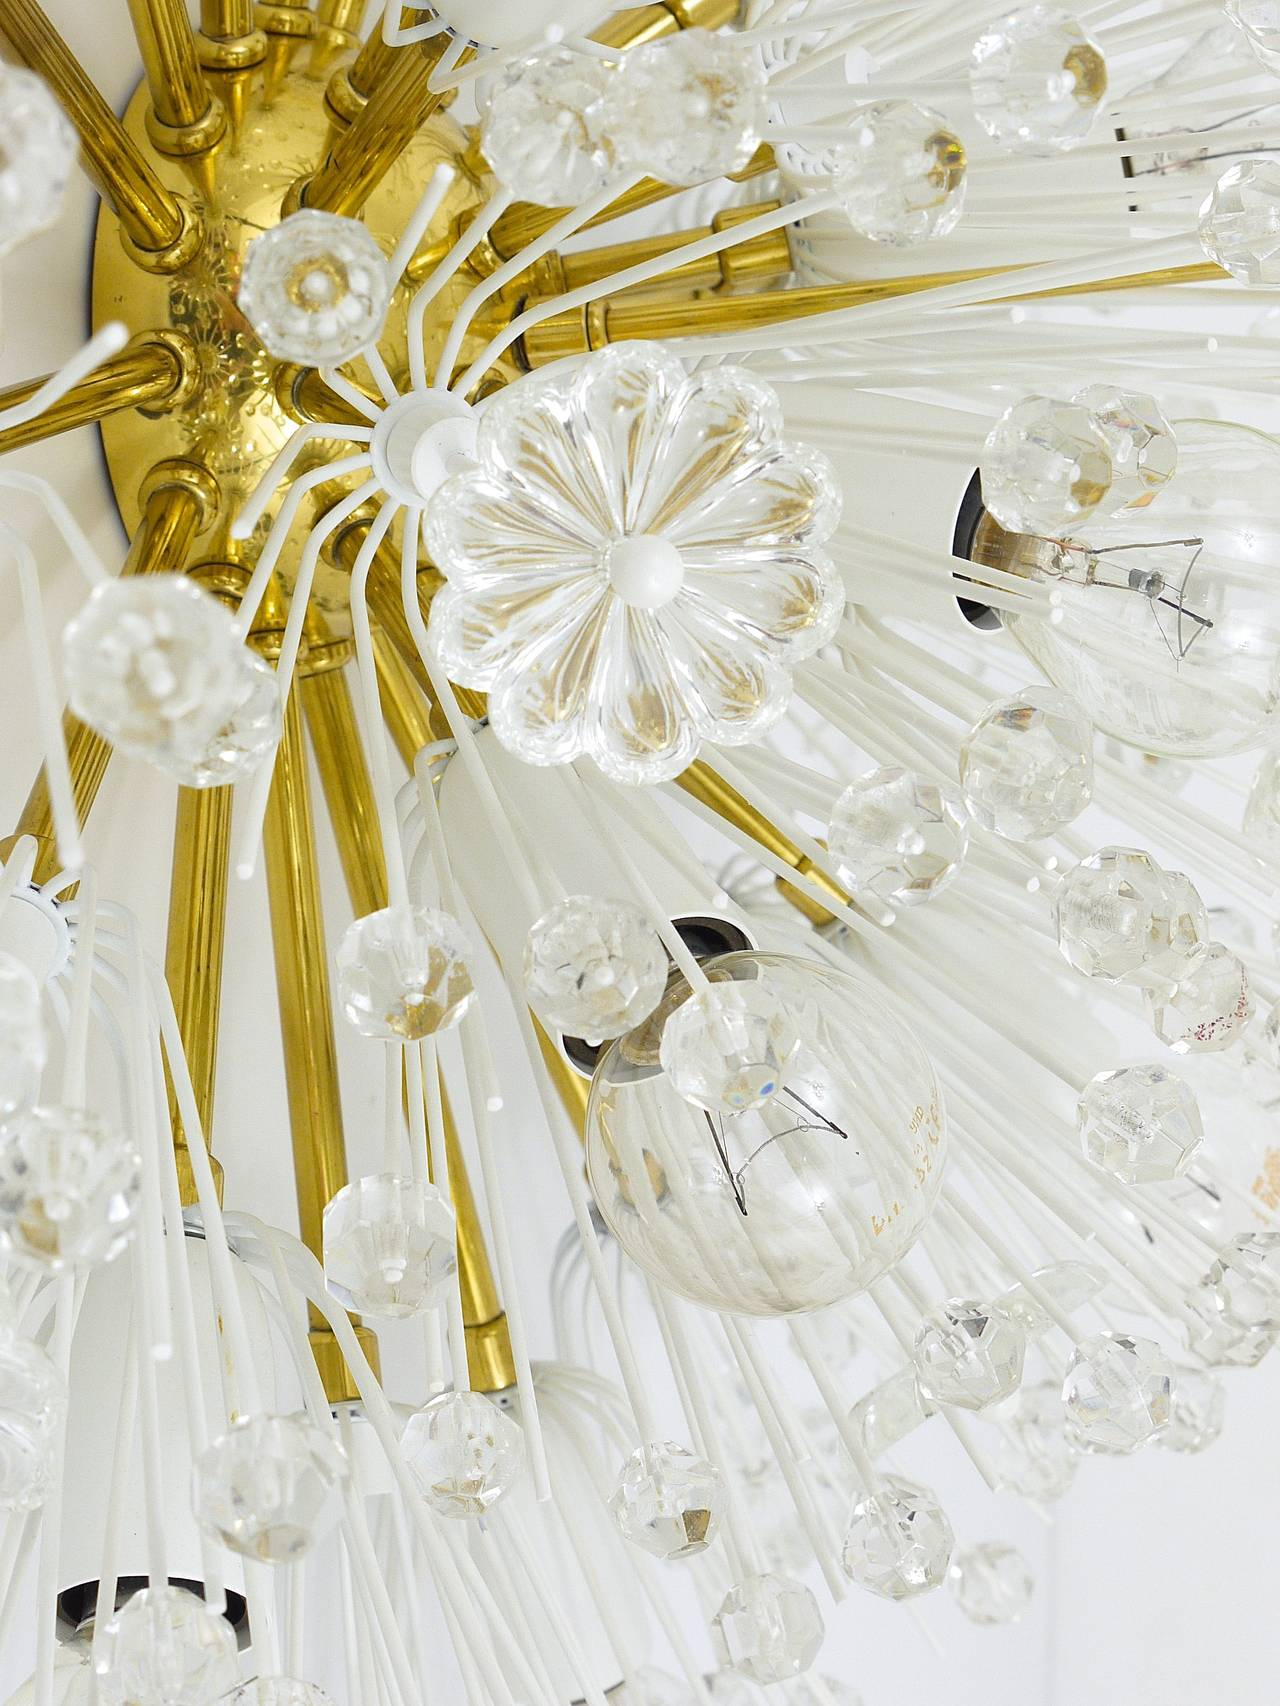 Austrian Emil Stejnar Brass Crystal Flush Mount or Sconce, Rupert Nikoll, 1950s In Excellent Condition For Sale In Vienna, AT